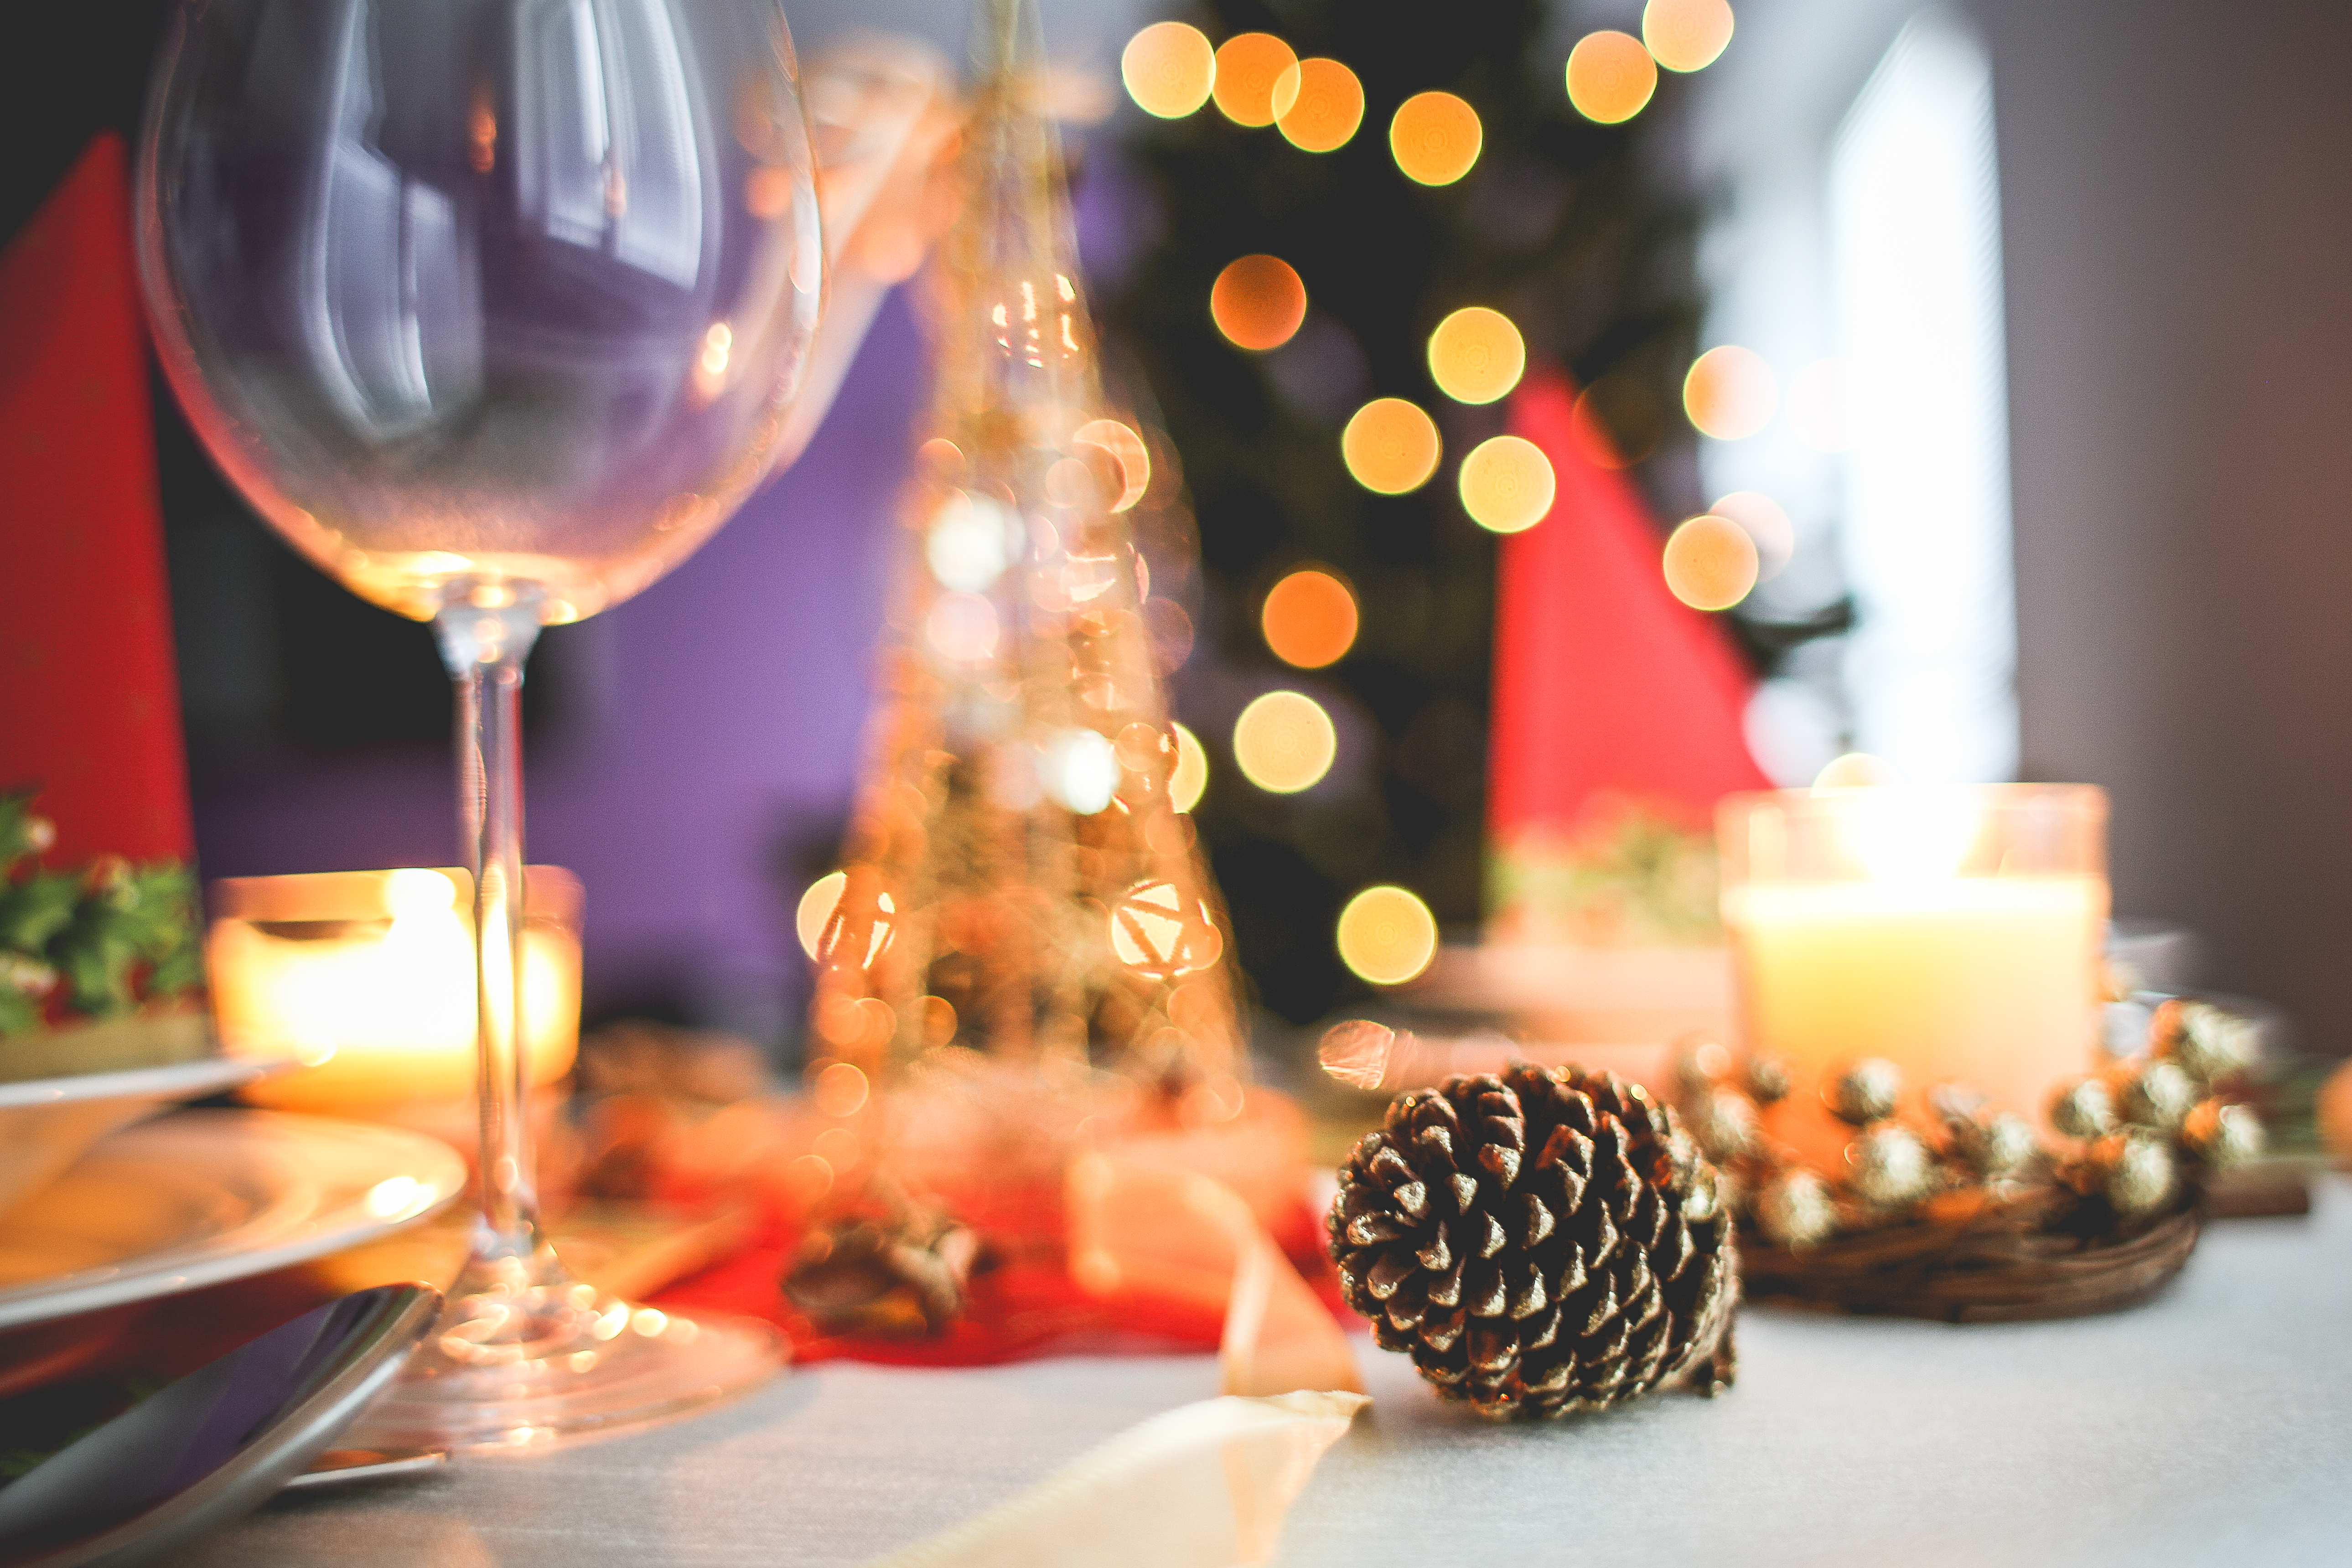 Have a Low-Risk Holiday Season